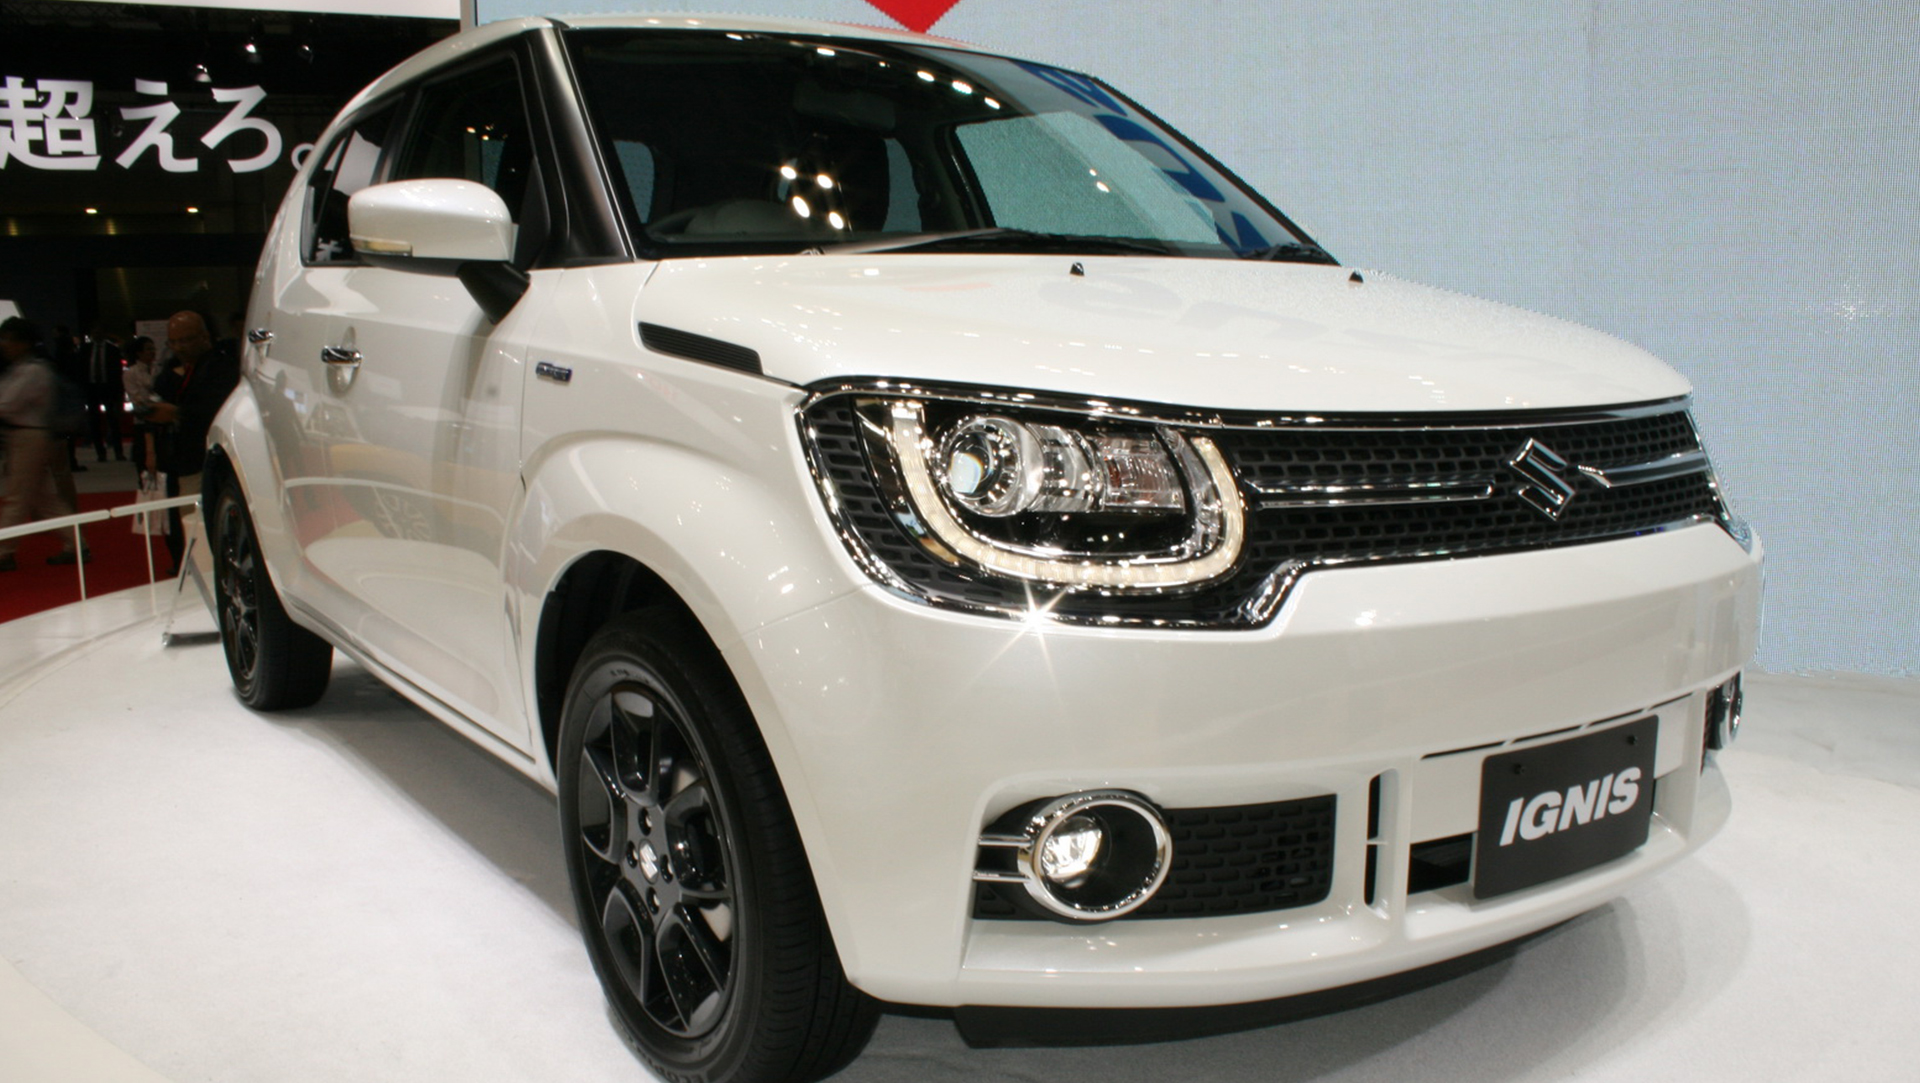 2015 Tokyo Motor Show All New Suzuki Ignis Compact Crossover